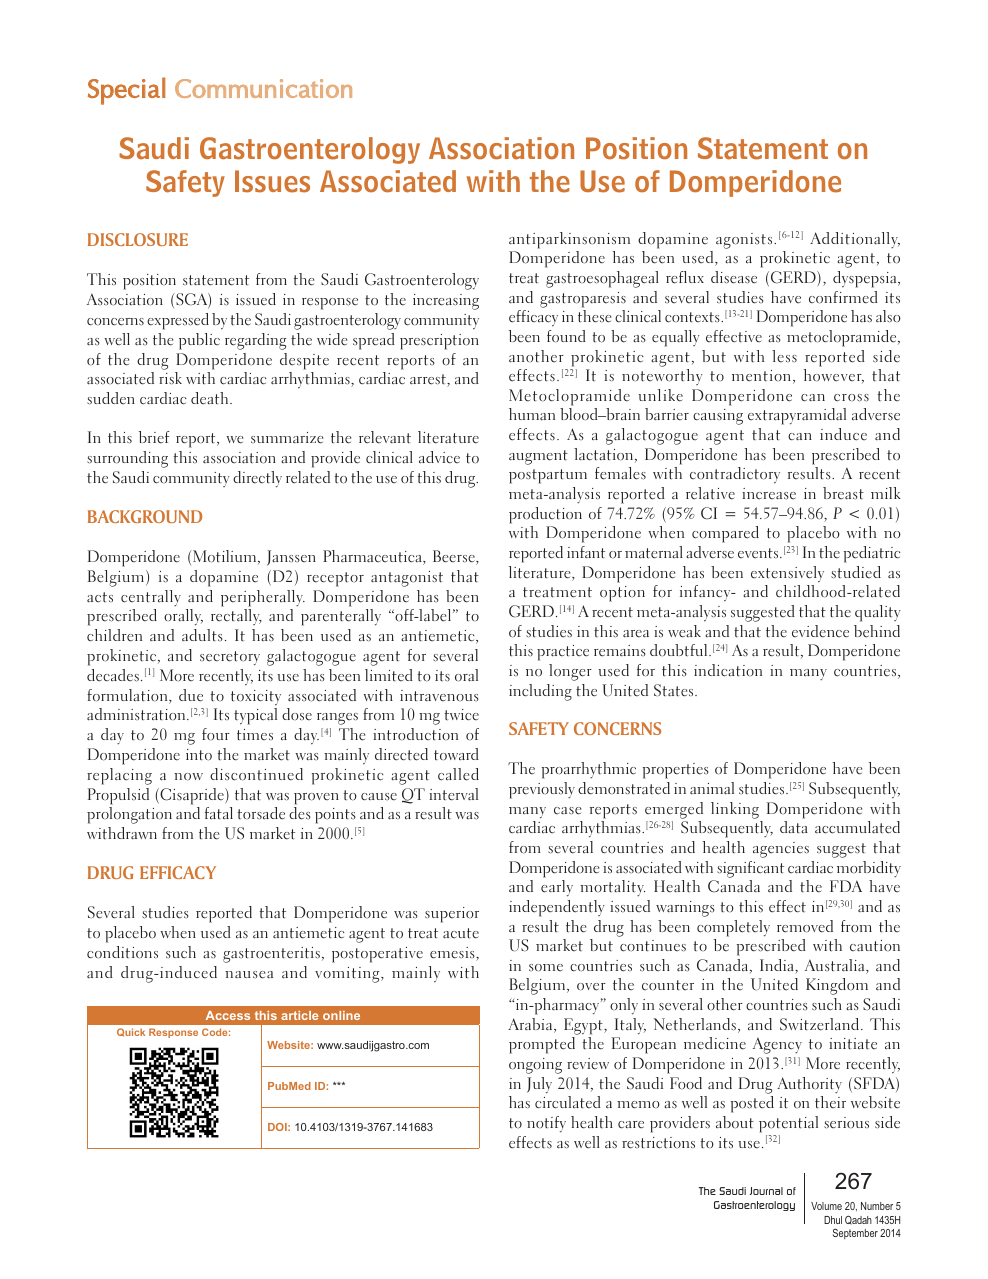 Saudi Gastroenterology Association Position Statement On Safety